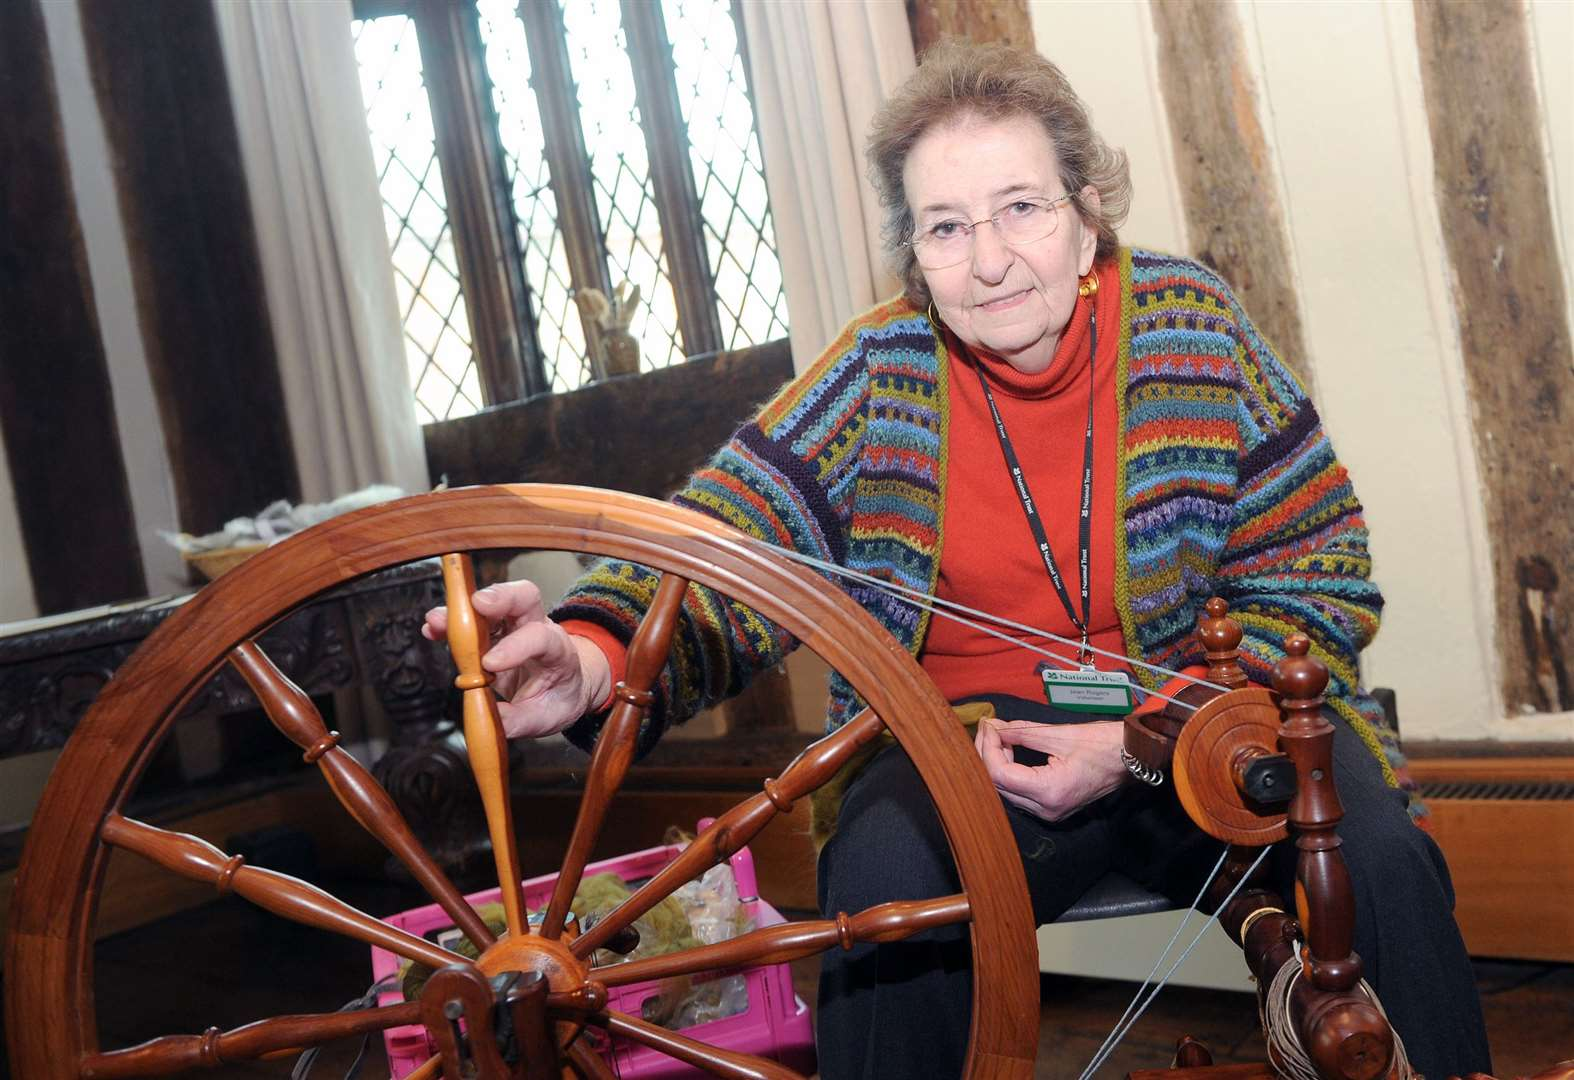 Lavenham Guildhall pays homage to wool trade heritage